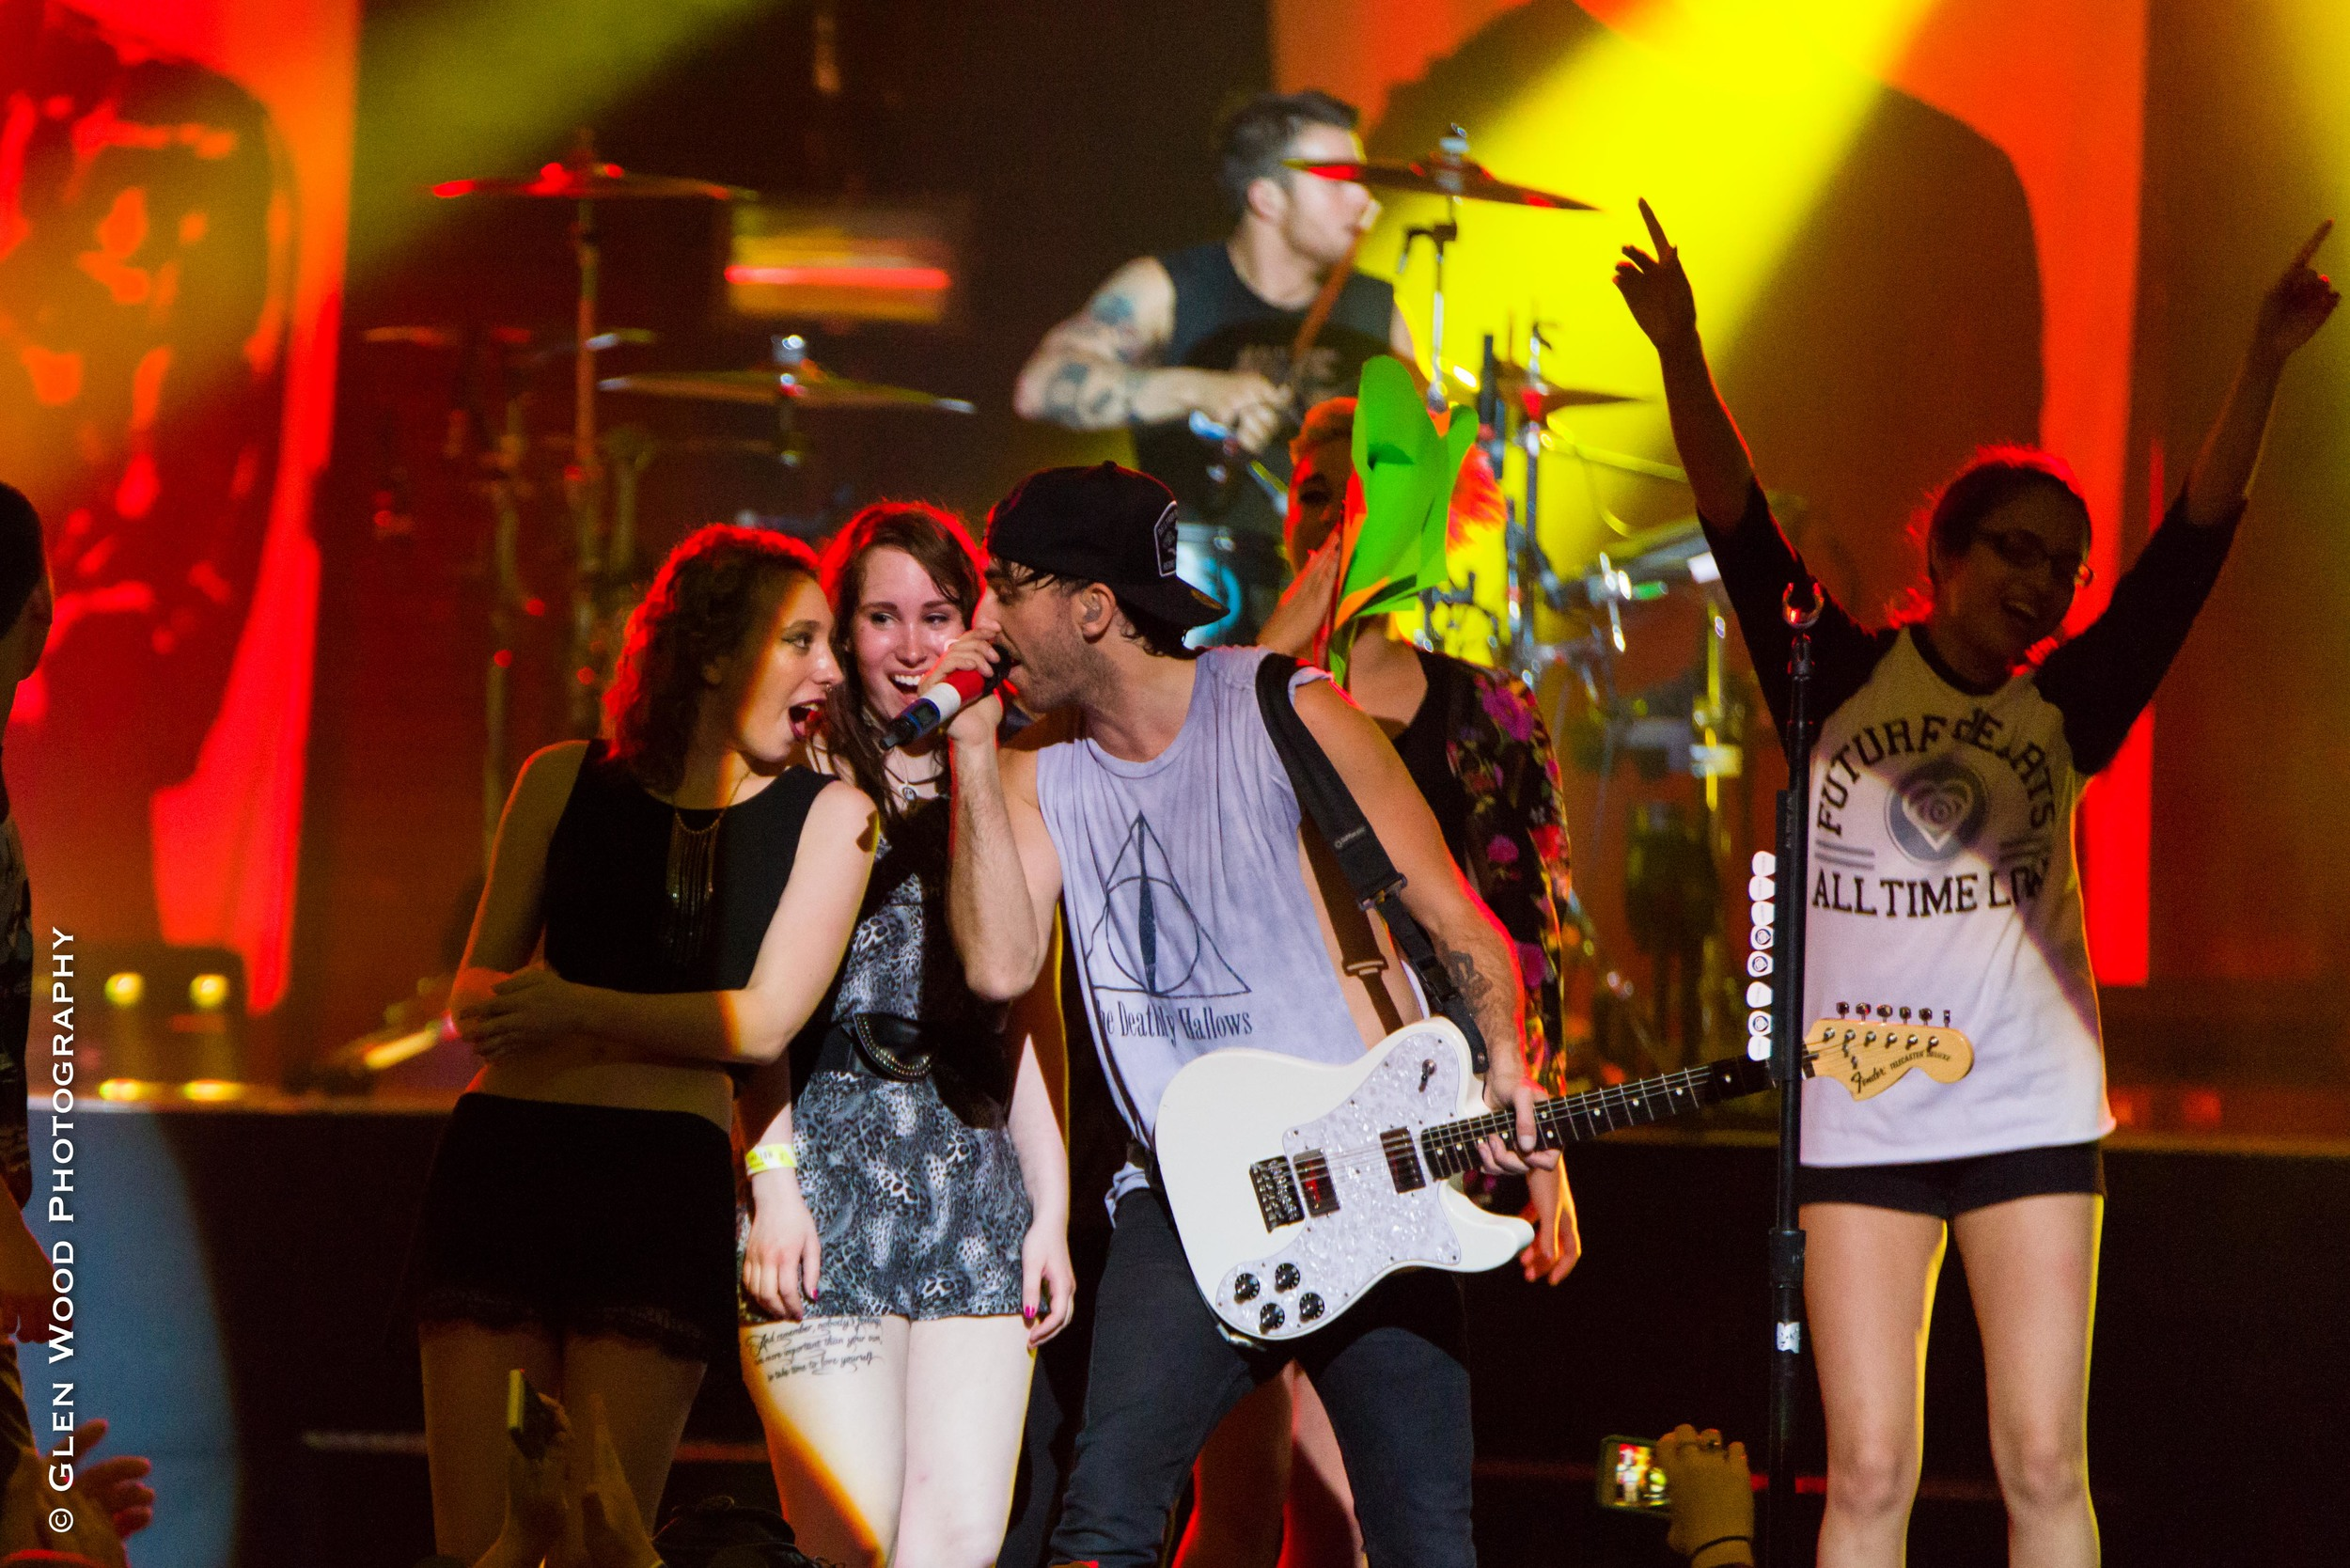 All Time Low-0882.jpg